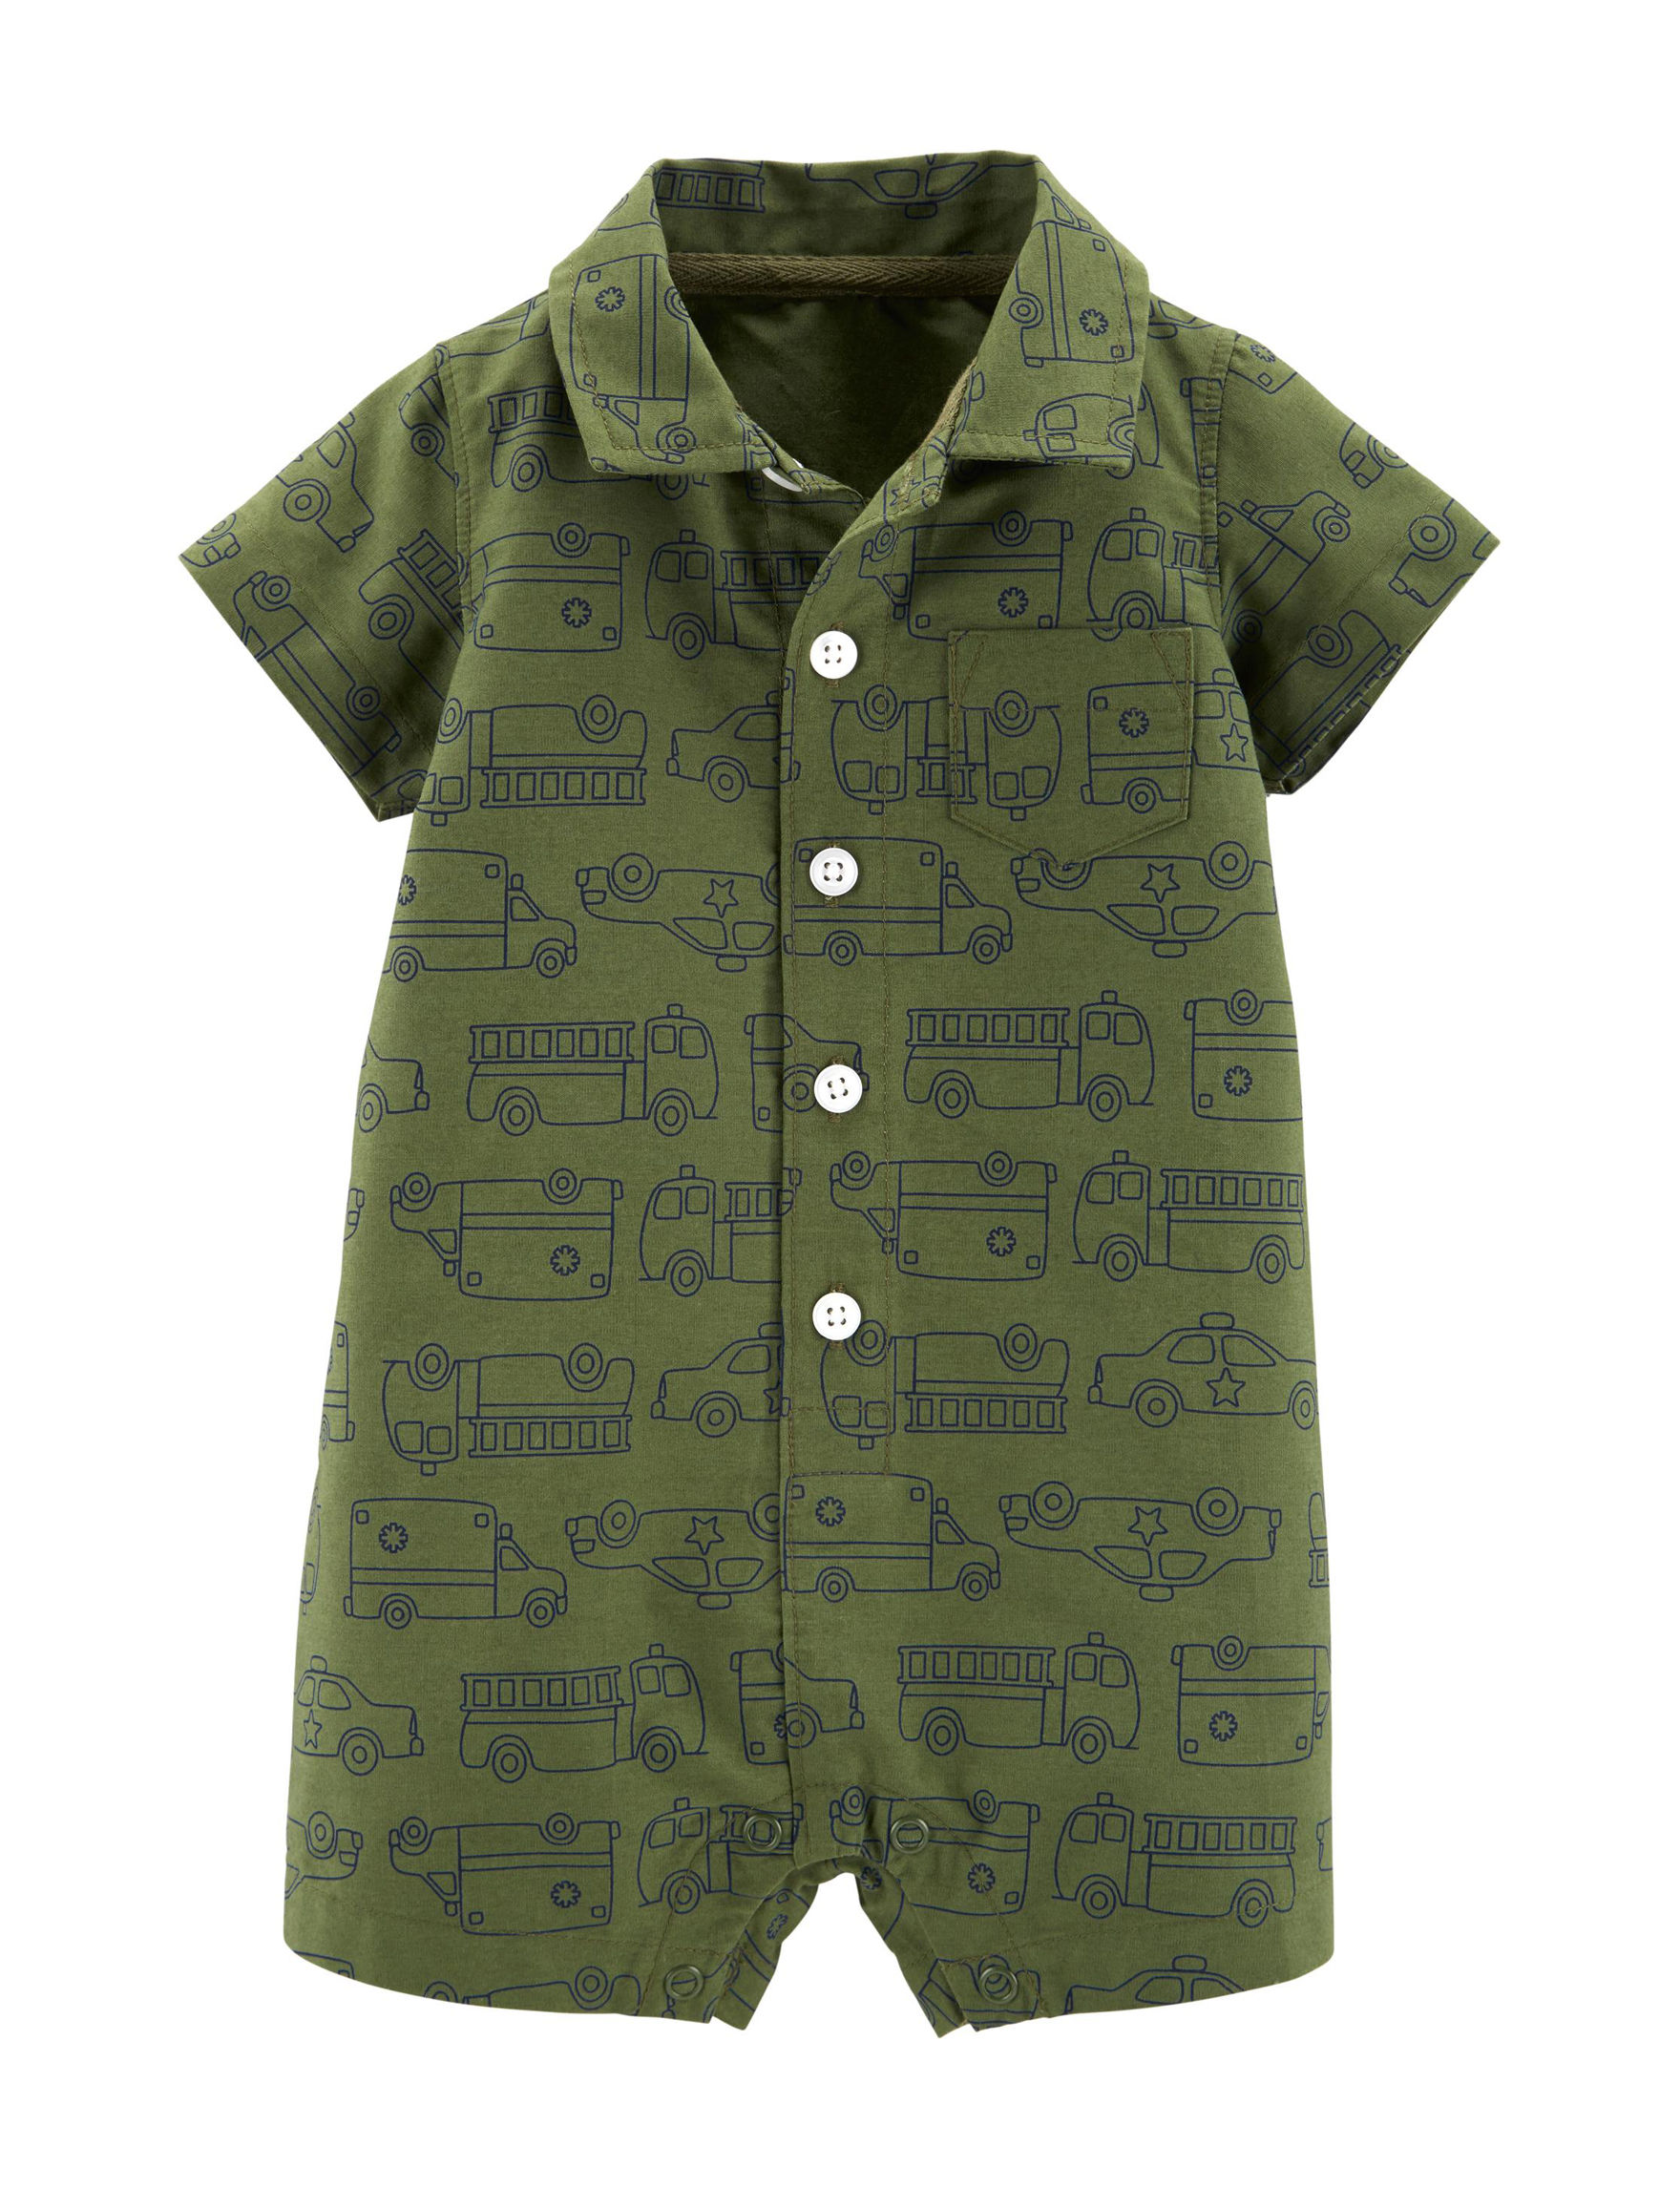 Carter's Olive Green